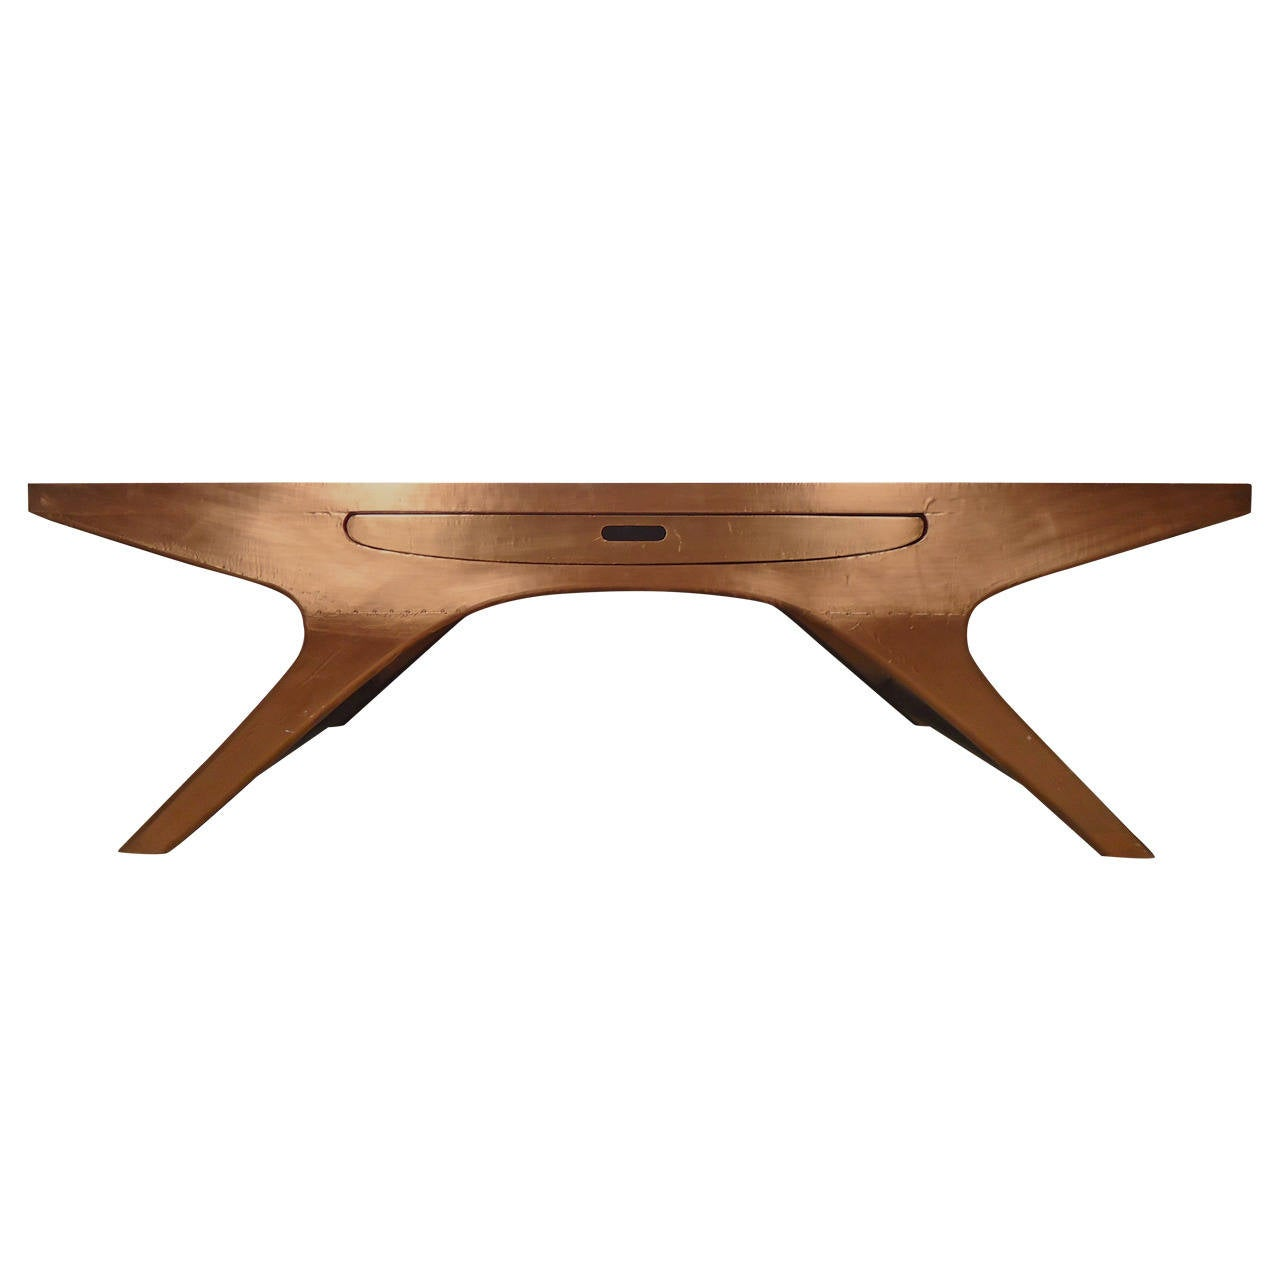 Wild Johannes Andersen Copper Plated Table For Sale